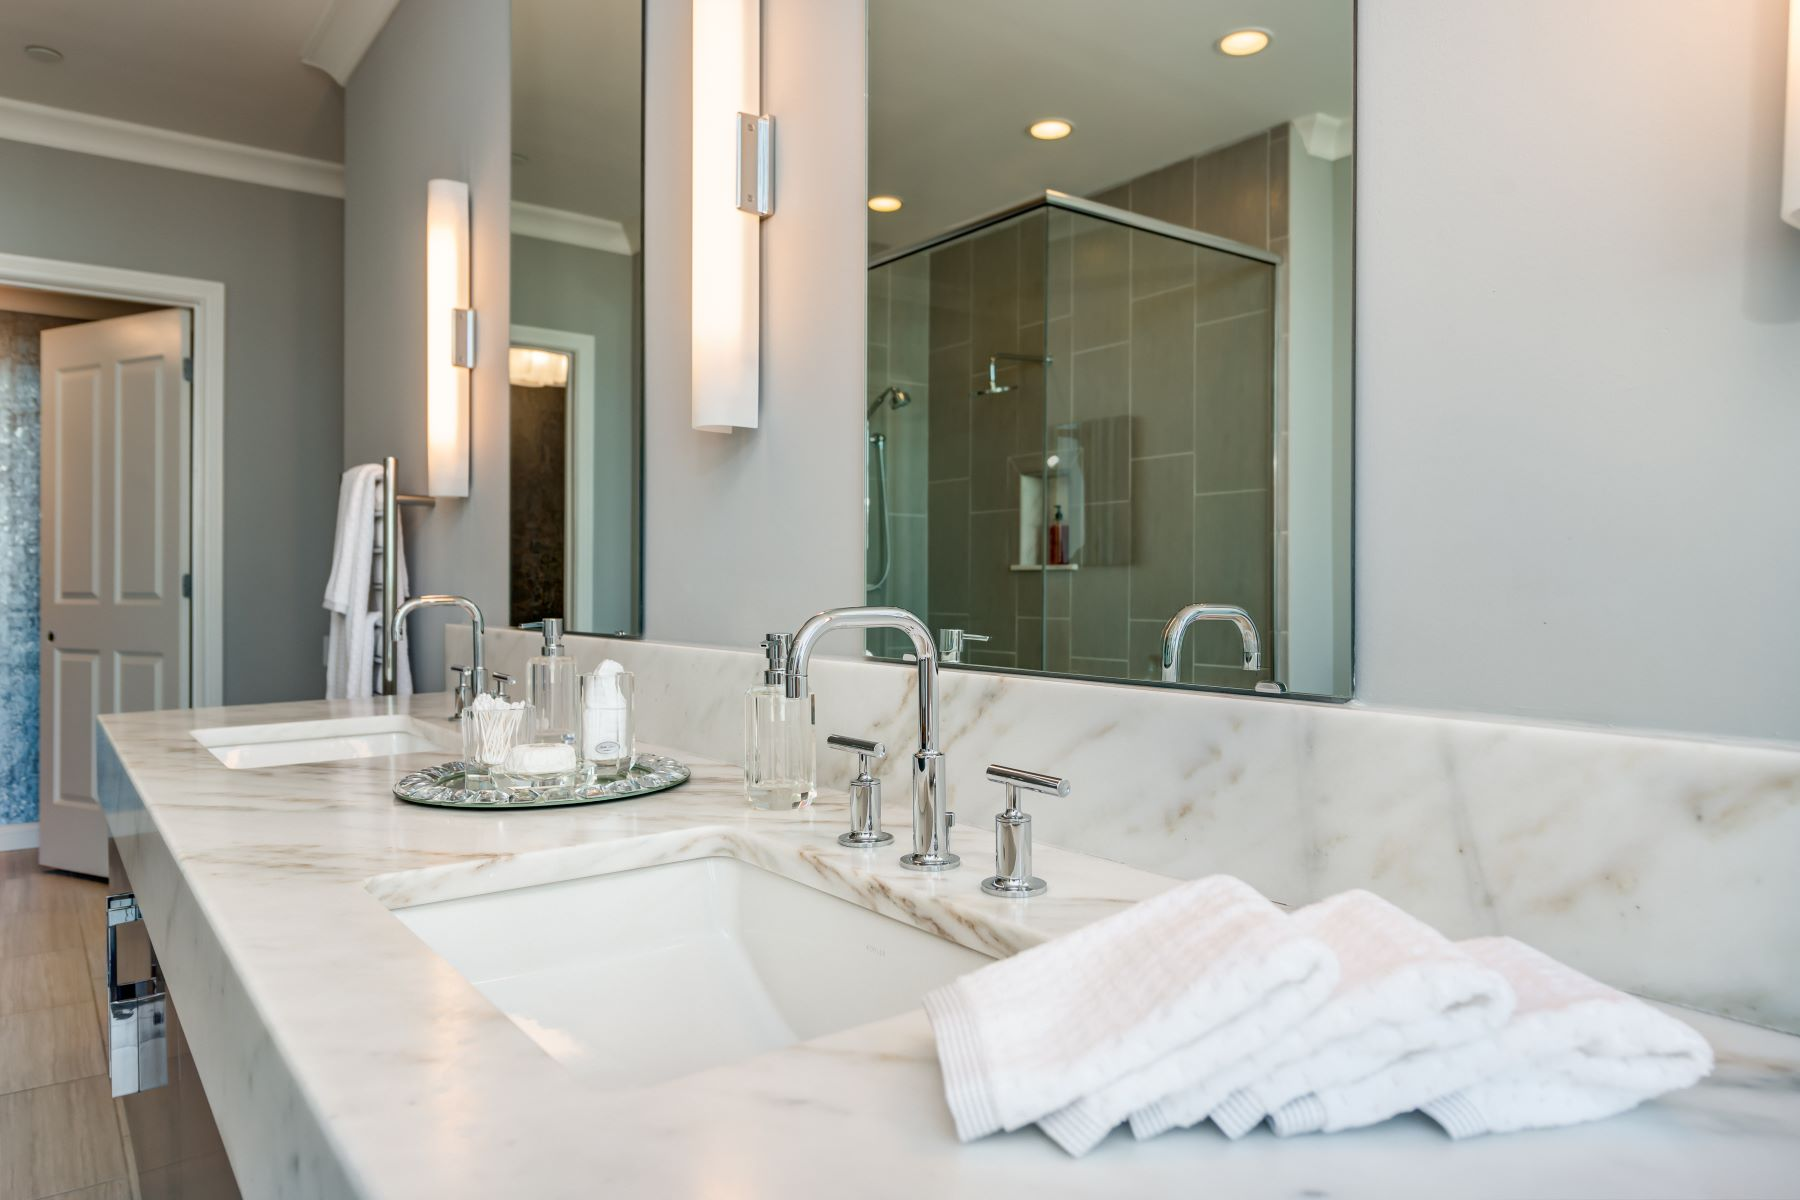 Additional photo for property listing at Park East Tower 4909 Laclede Avenue #2402 St. Louis, Missouri 63108 United States